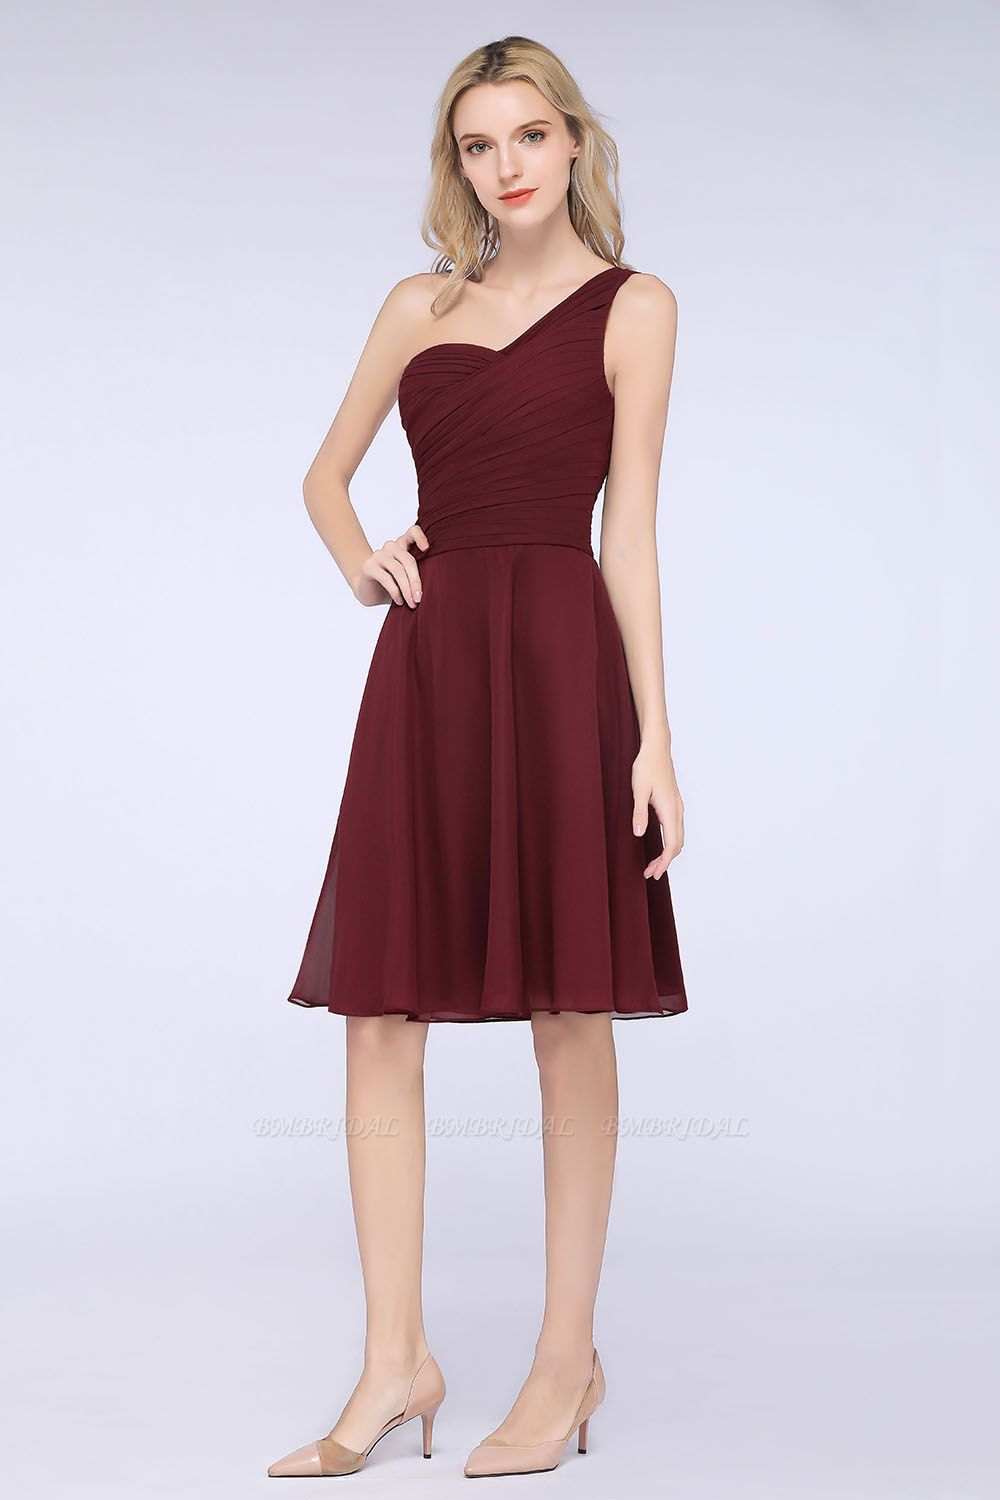 Chic One-Shoulder Short Burgundy Affordable Bridesmaid Dress with Ruffle